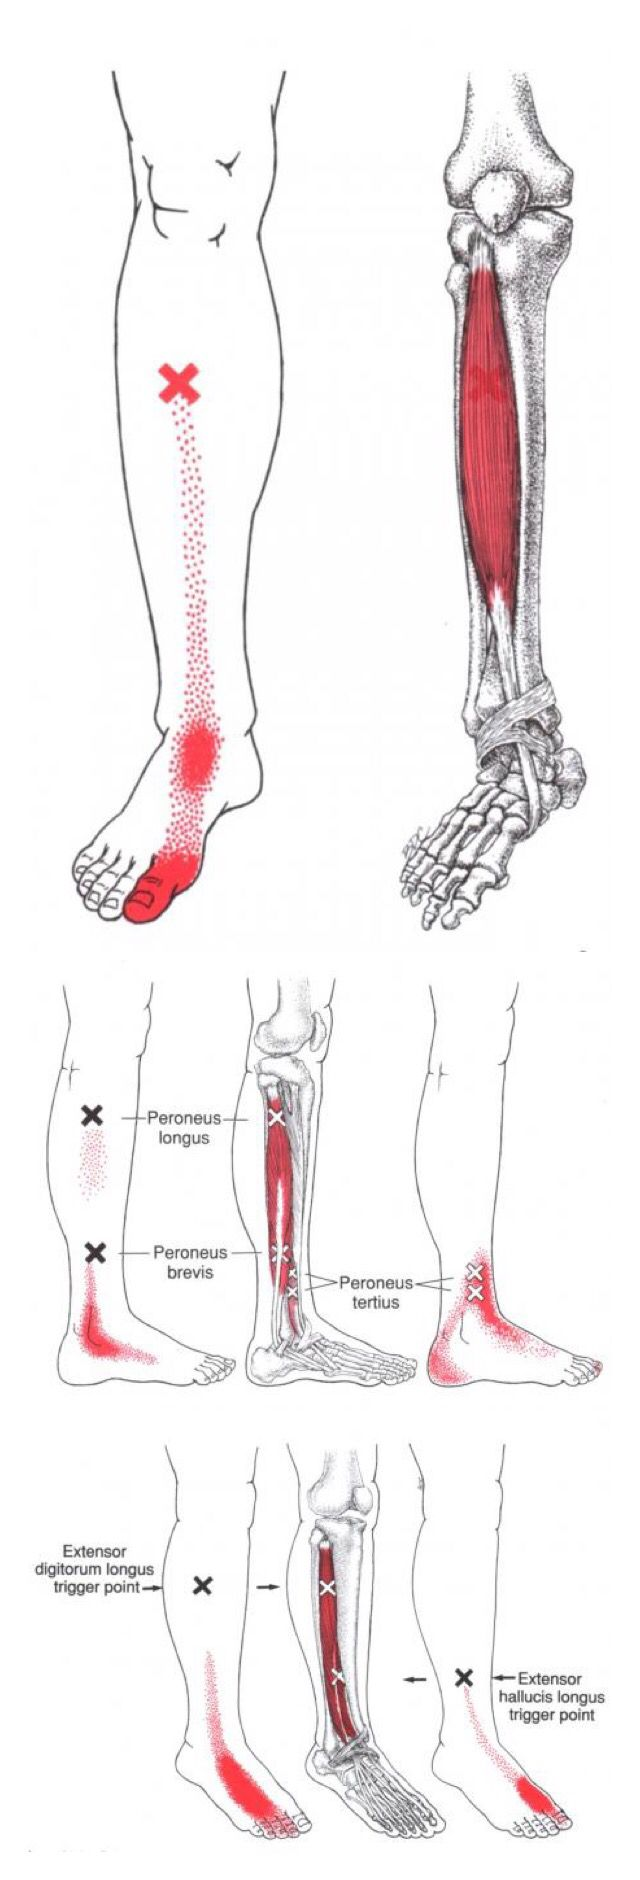 Anterior Ankle Pain | Health ❤ Myofascial Release ❤ Trigger Point ...